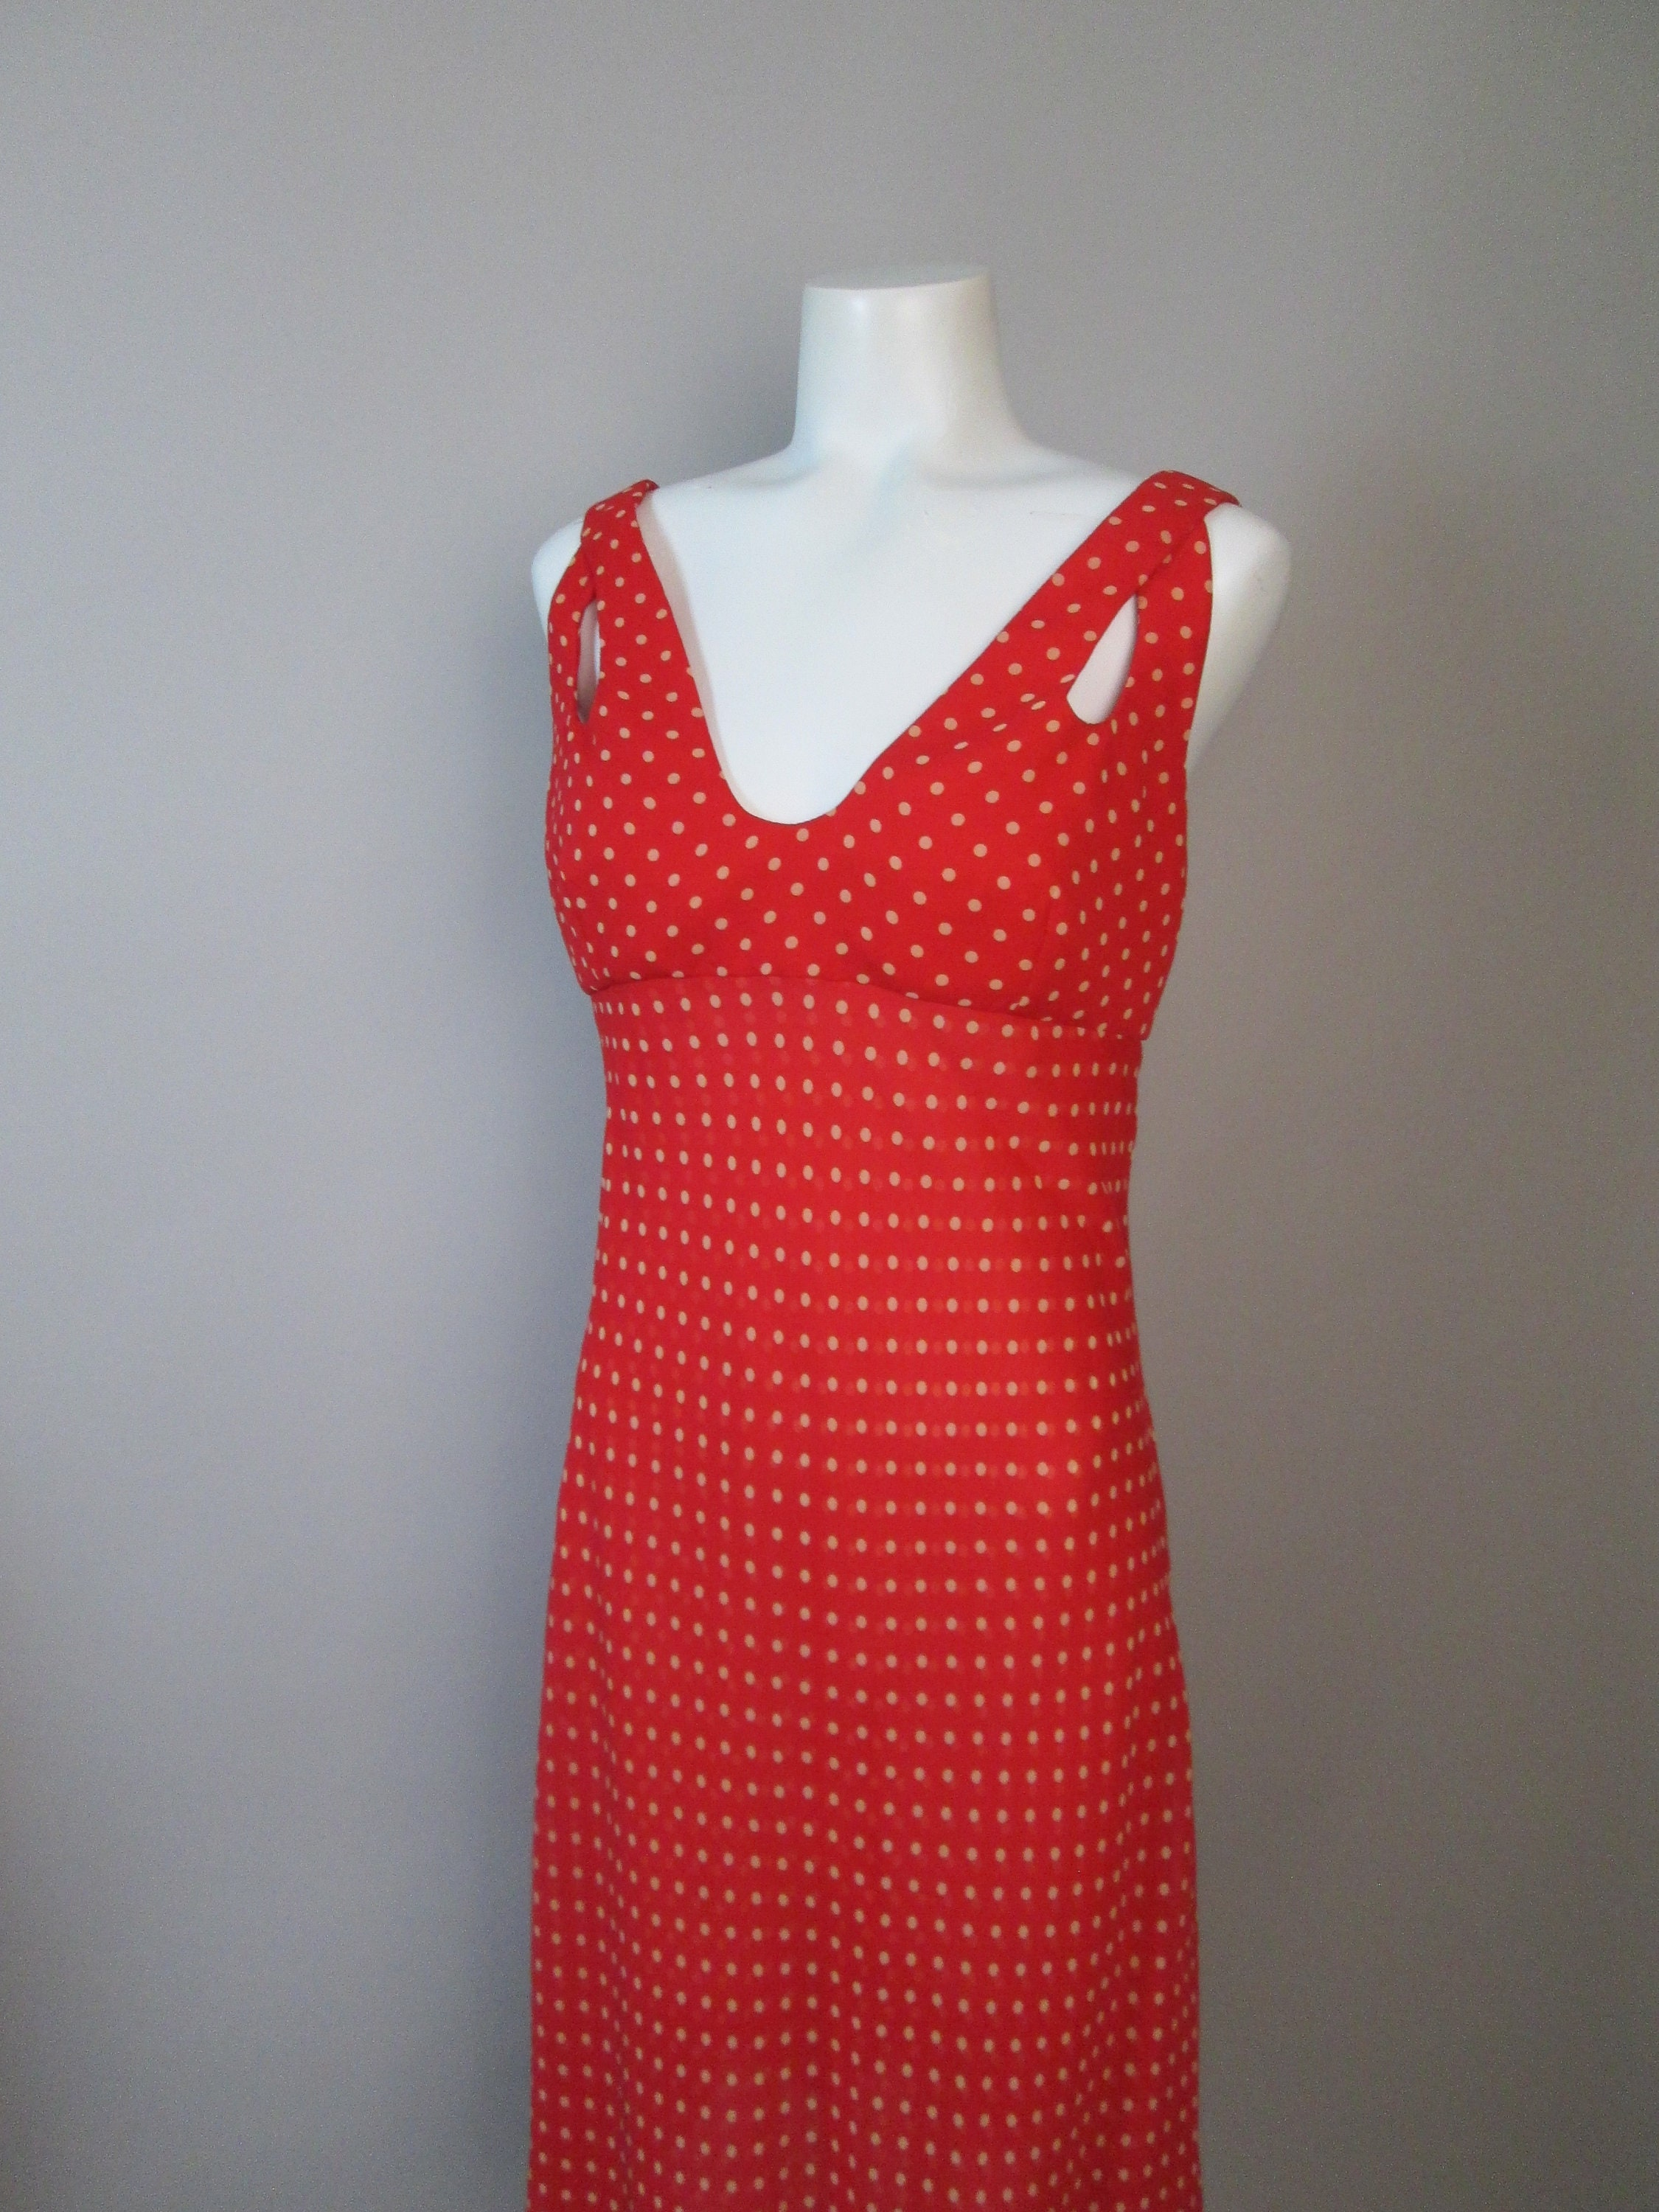 80s Dresses | Casual to Party Dresses 1980S Valentino Dress. Signature Red Silk Chiffon, Polka Dots, Cutout Bodice, Layered Slip Construction, Over Jacket With Cord Buttons. 6-8 $0.00 AT vintagedancer.com